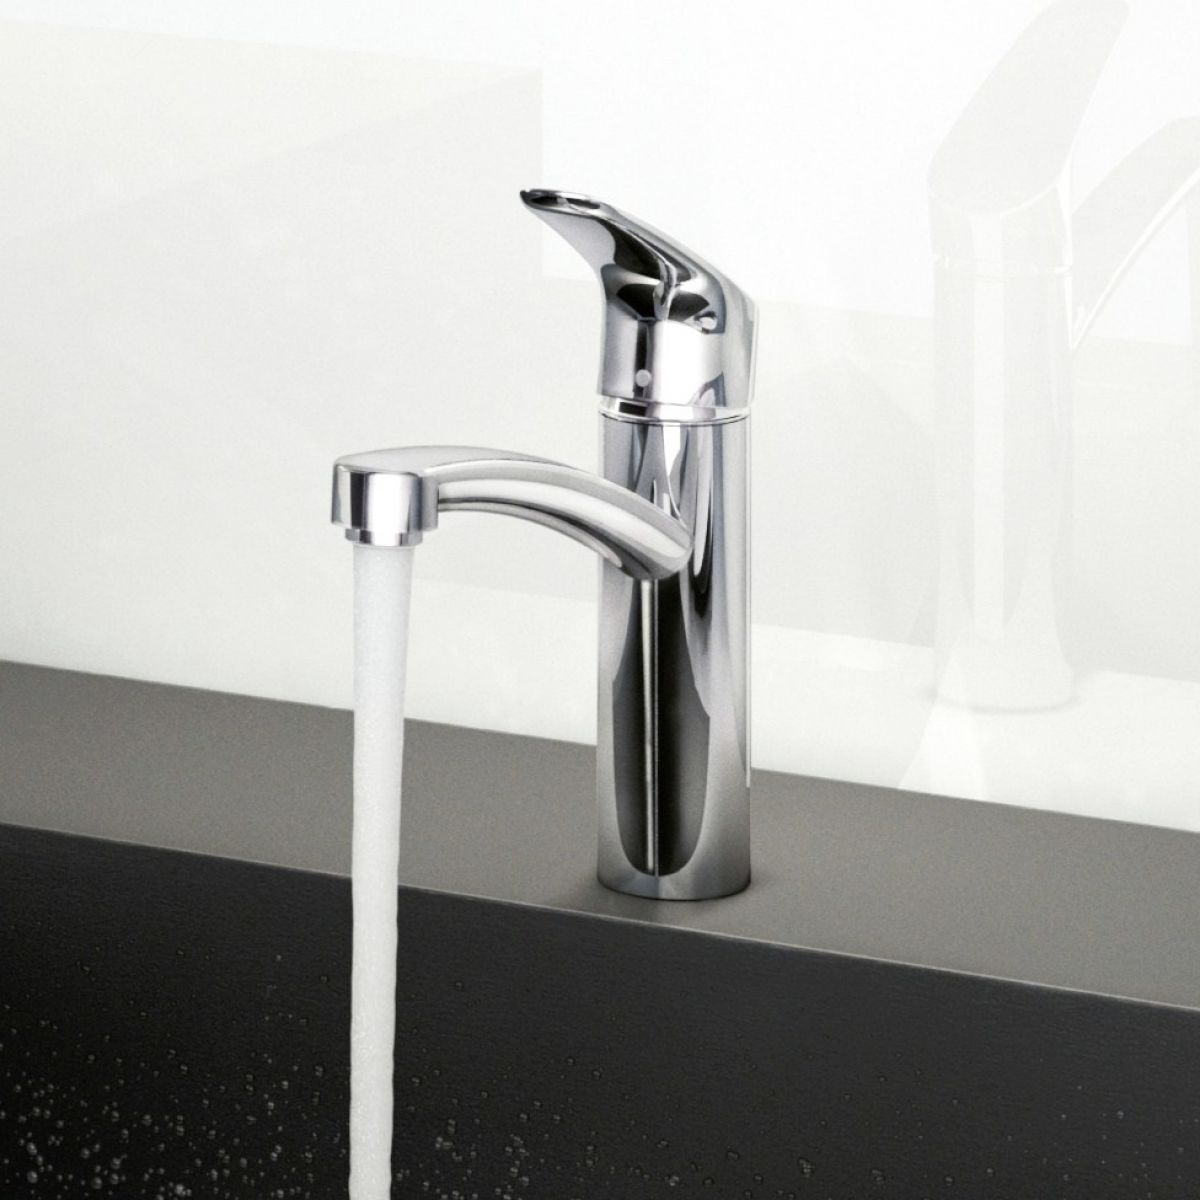 hansgrohe focus 160 kitchen mixer tap uk bathrooms. Black Bedroom Furniture Sets. Home Design Ideas